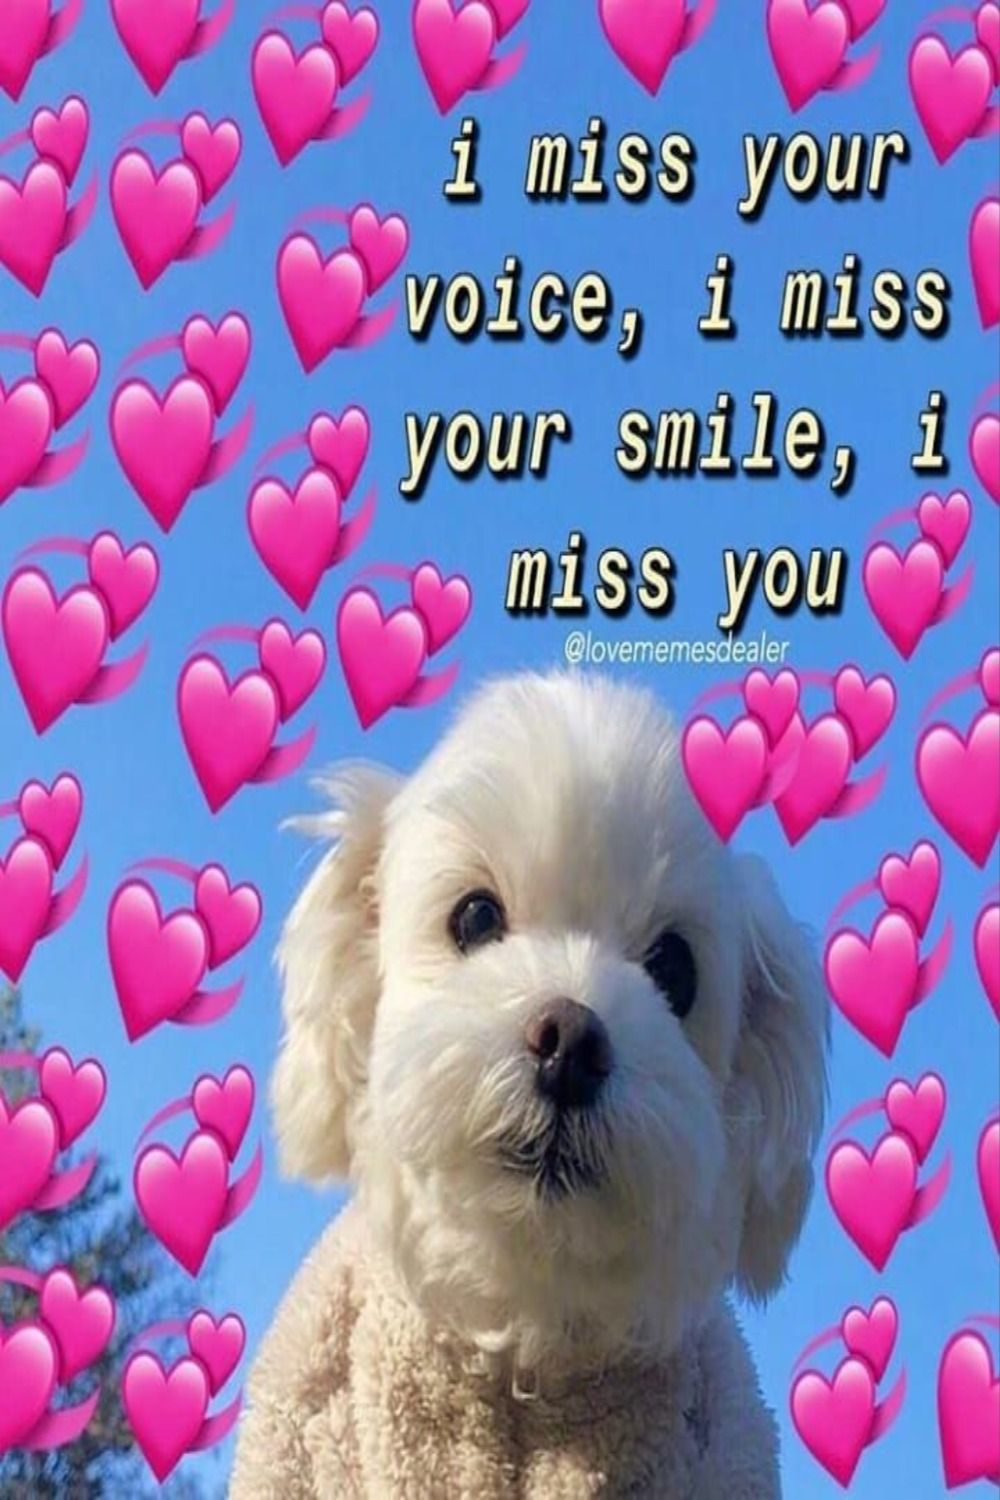 21 Funny I Love You Memes Quotes And Humor Love You Meme Cute Memes Cute Love Memes